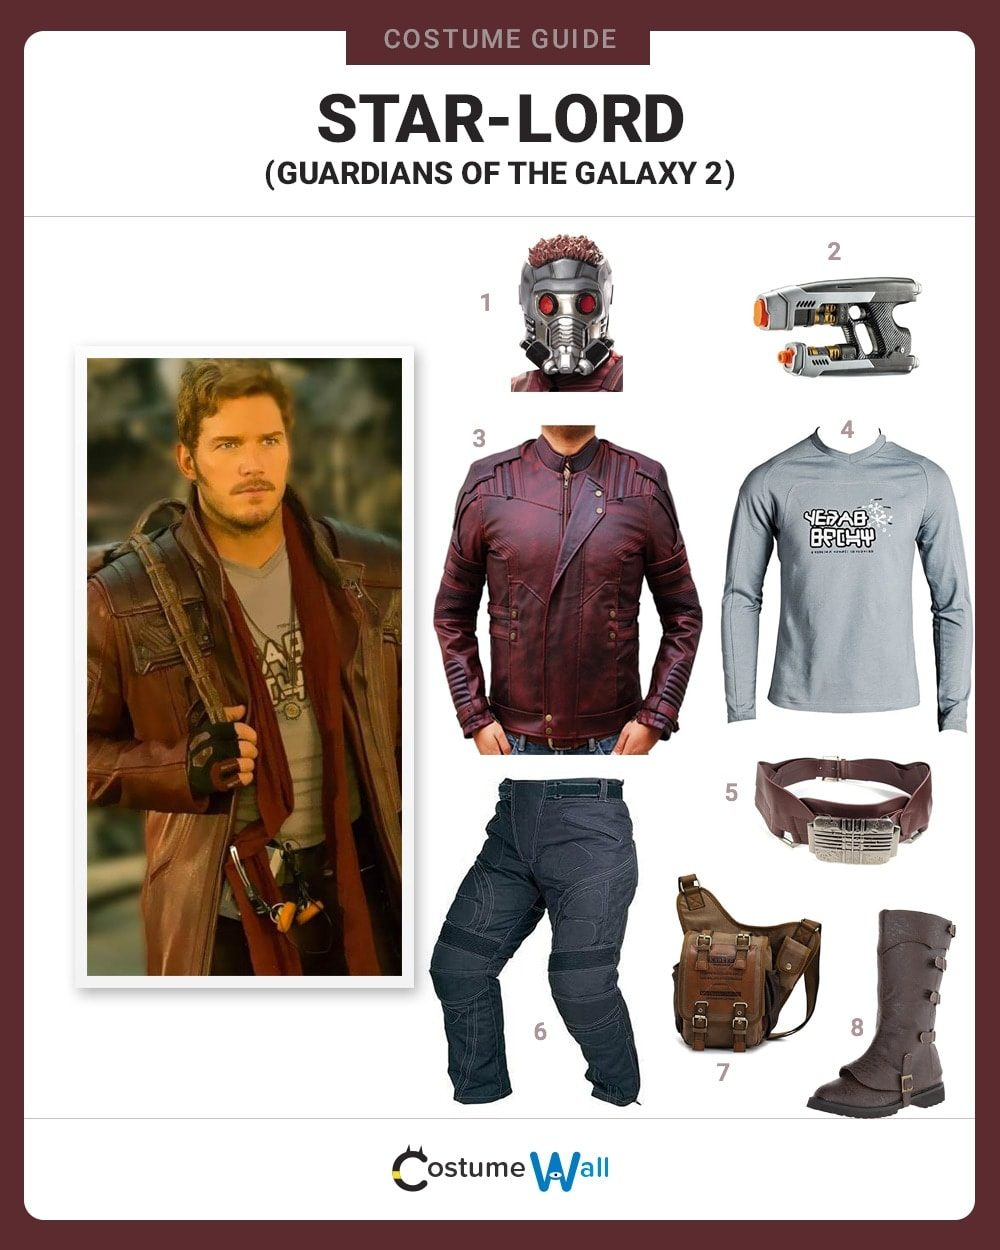 Star-Lord vol. 2 Costume Guide